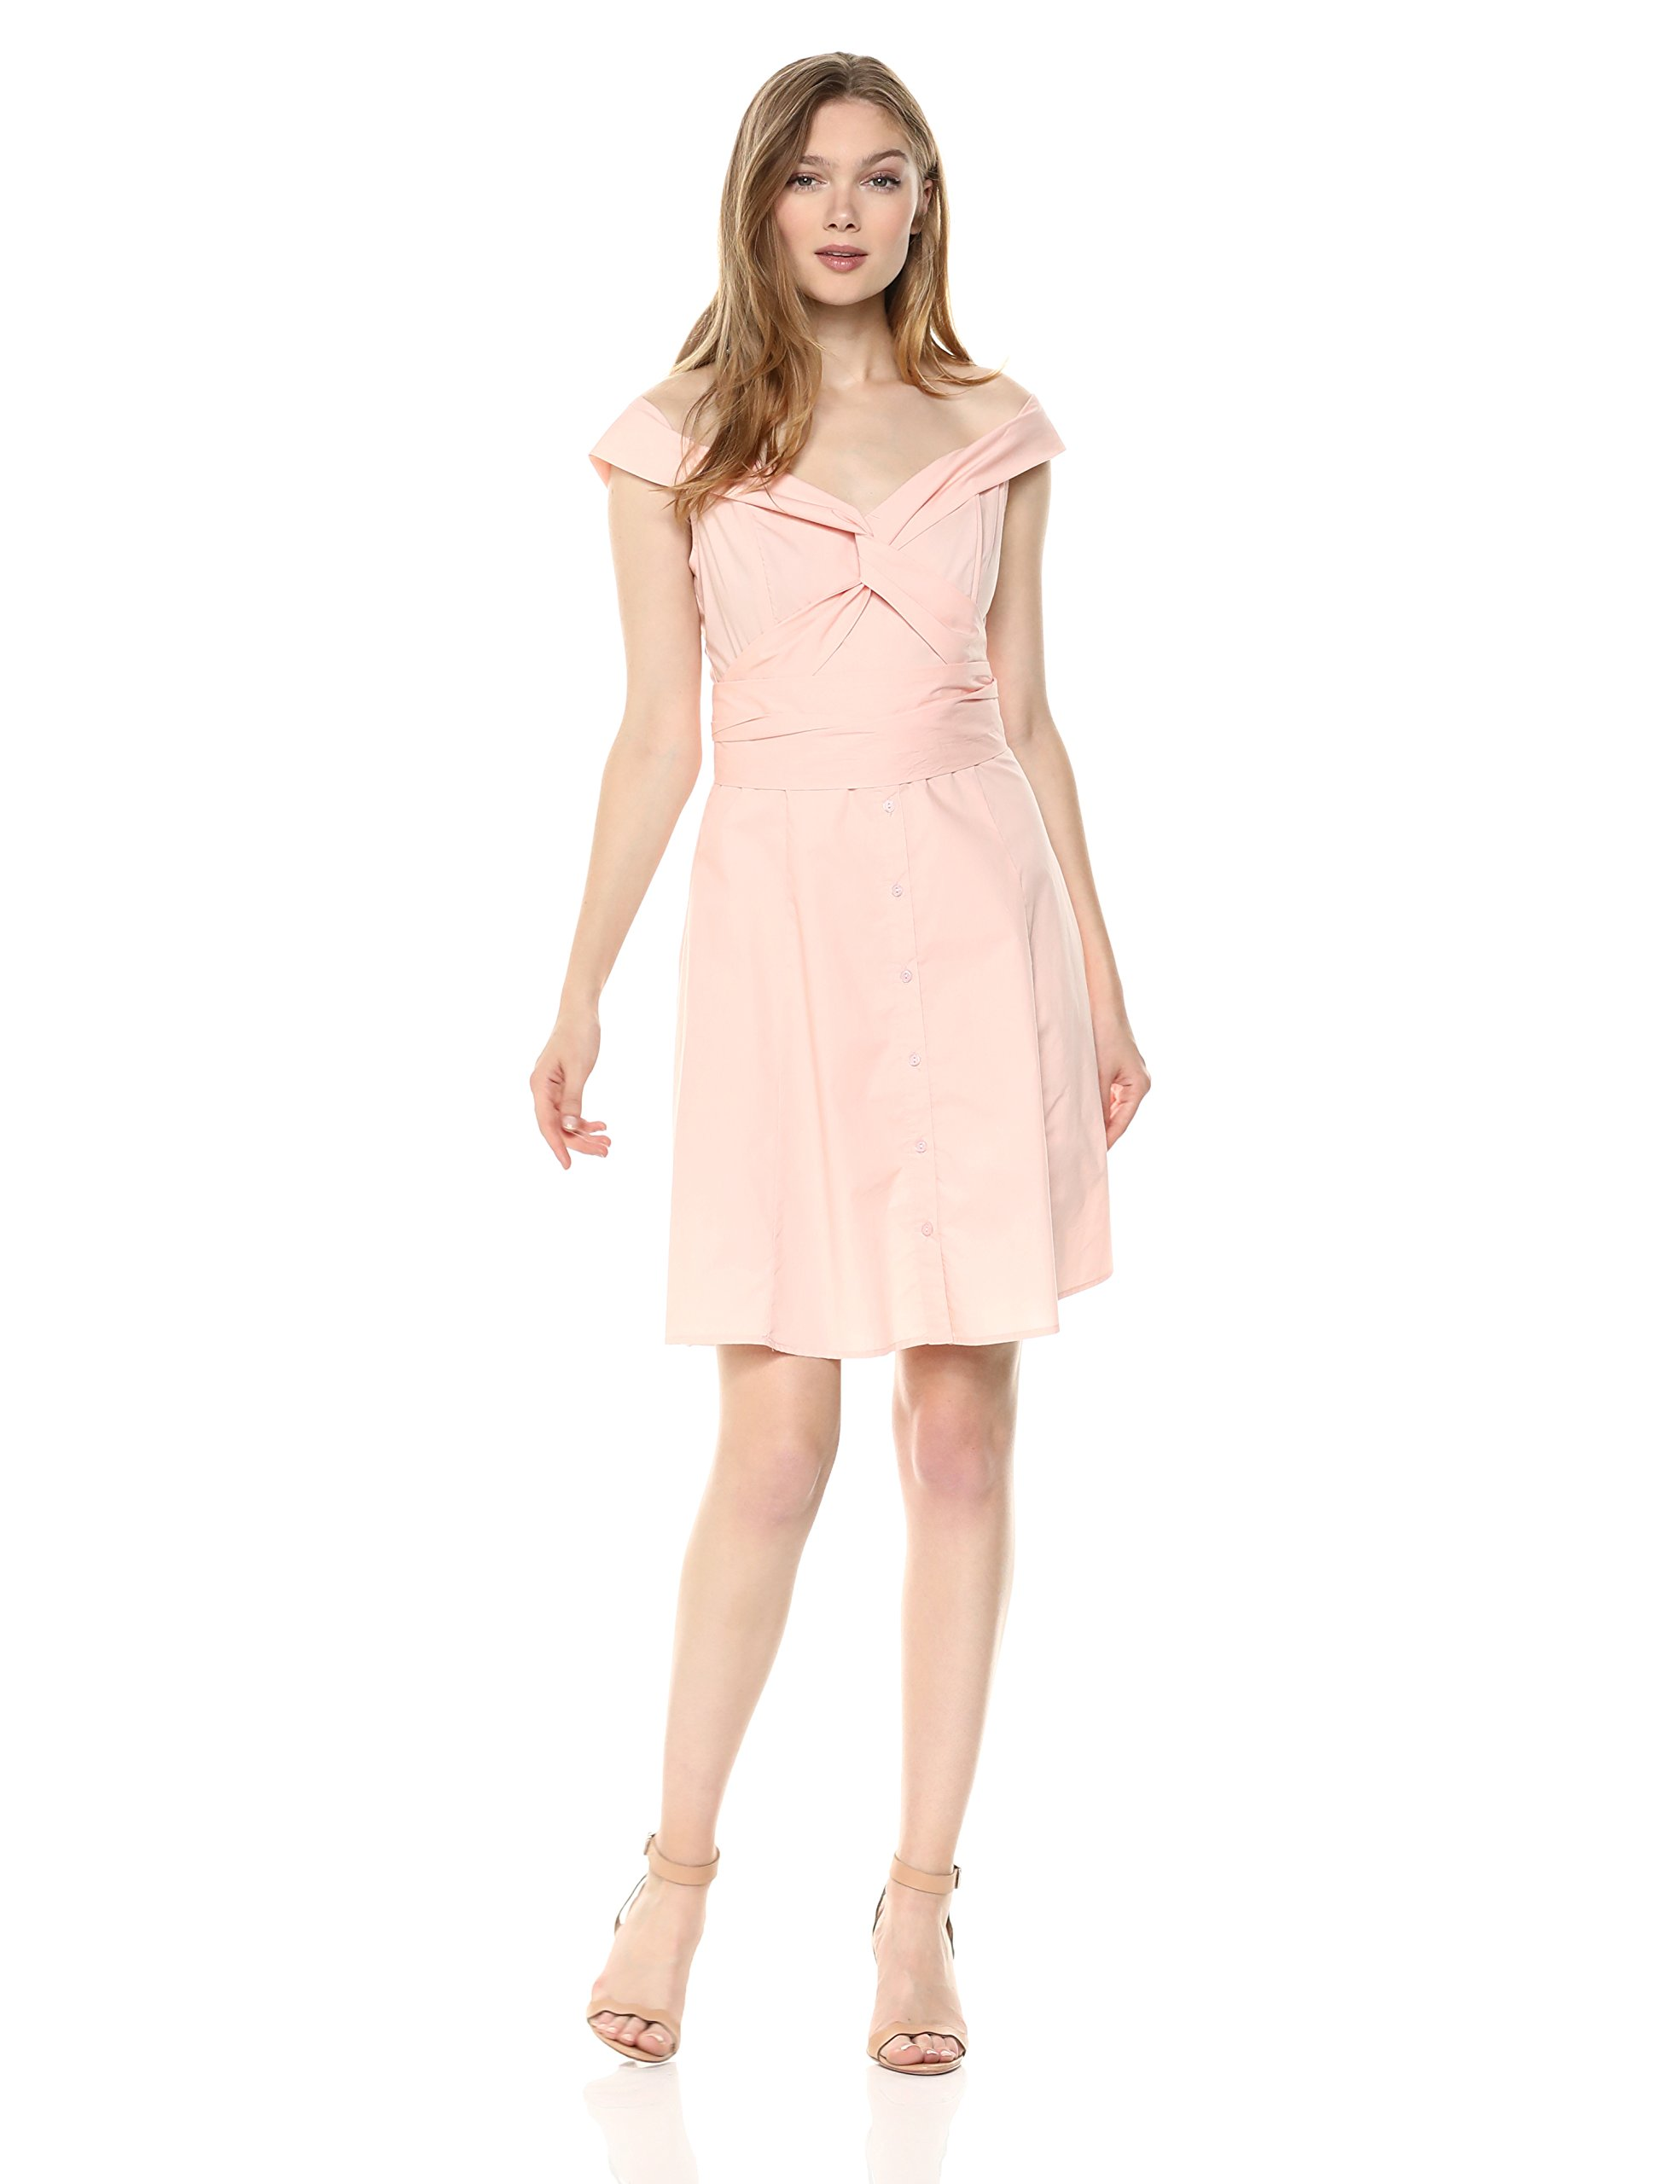 Available at Amazon: ASTR the label Women's Brittany Off The Shoulder Fit & Flare Casual Dress with Belt